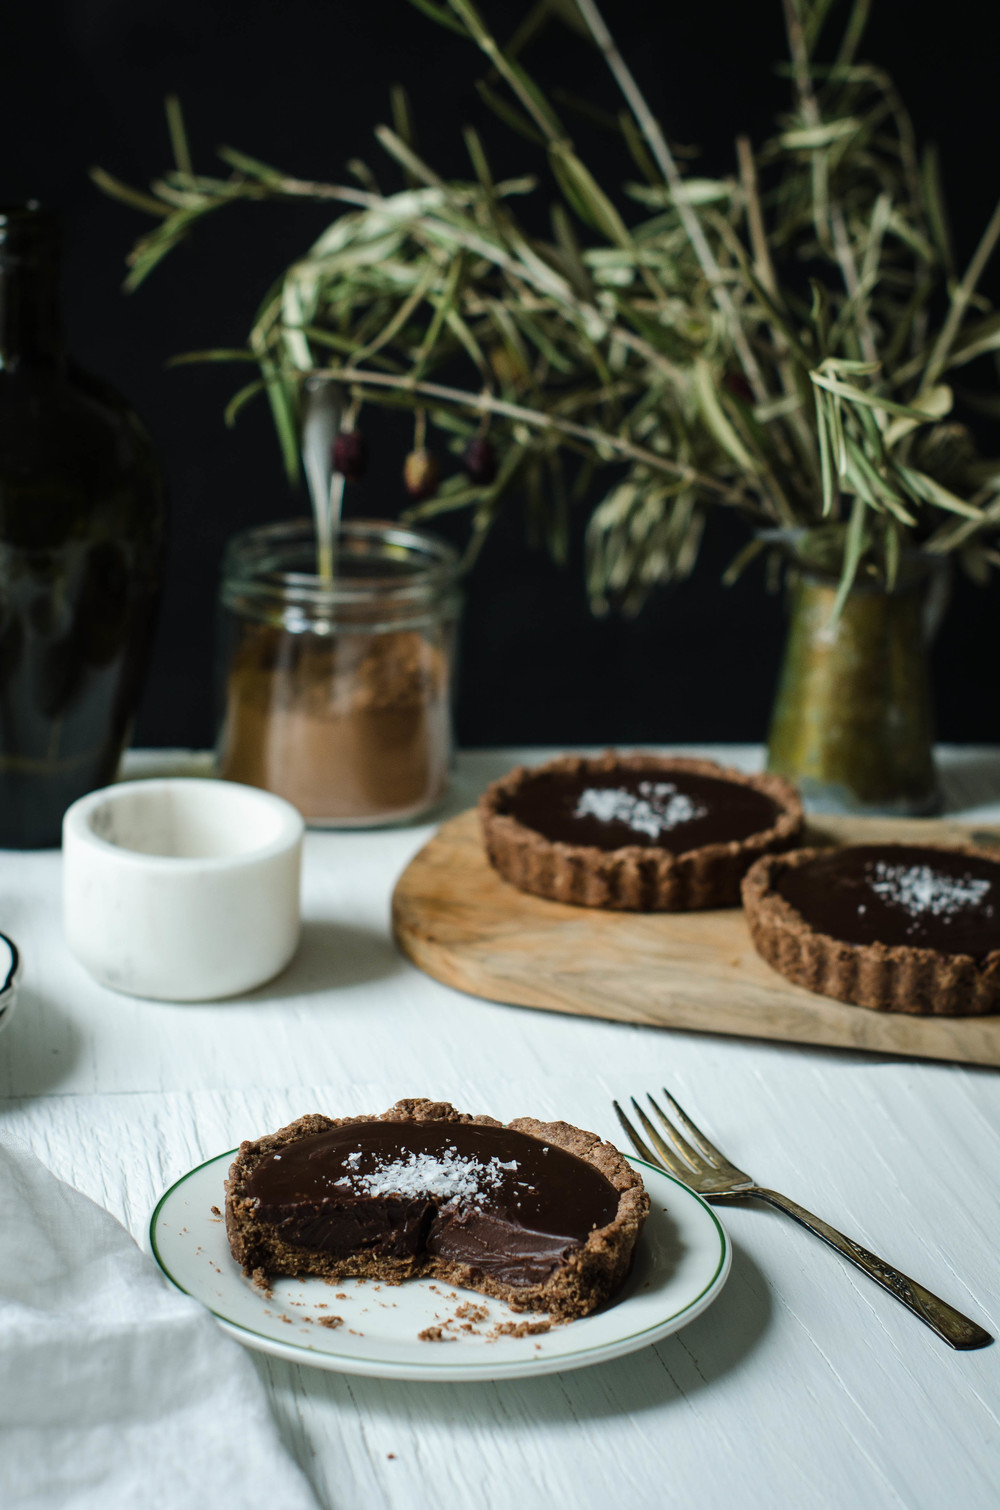 ROSE & IVY JOURNAL CHOCOLATE GANACHE TART WITH OLIVE OIL CRUST